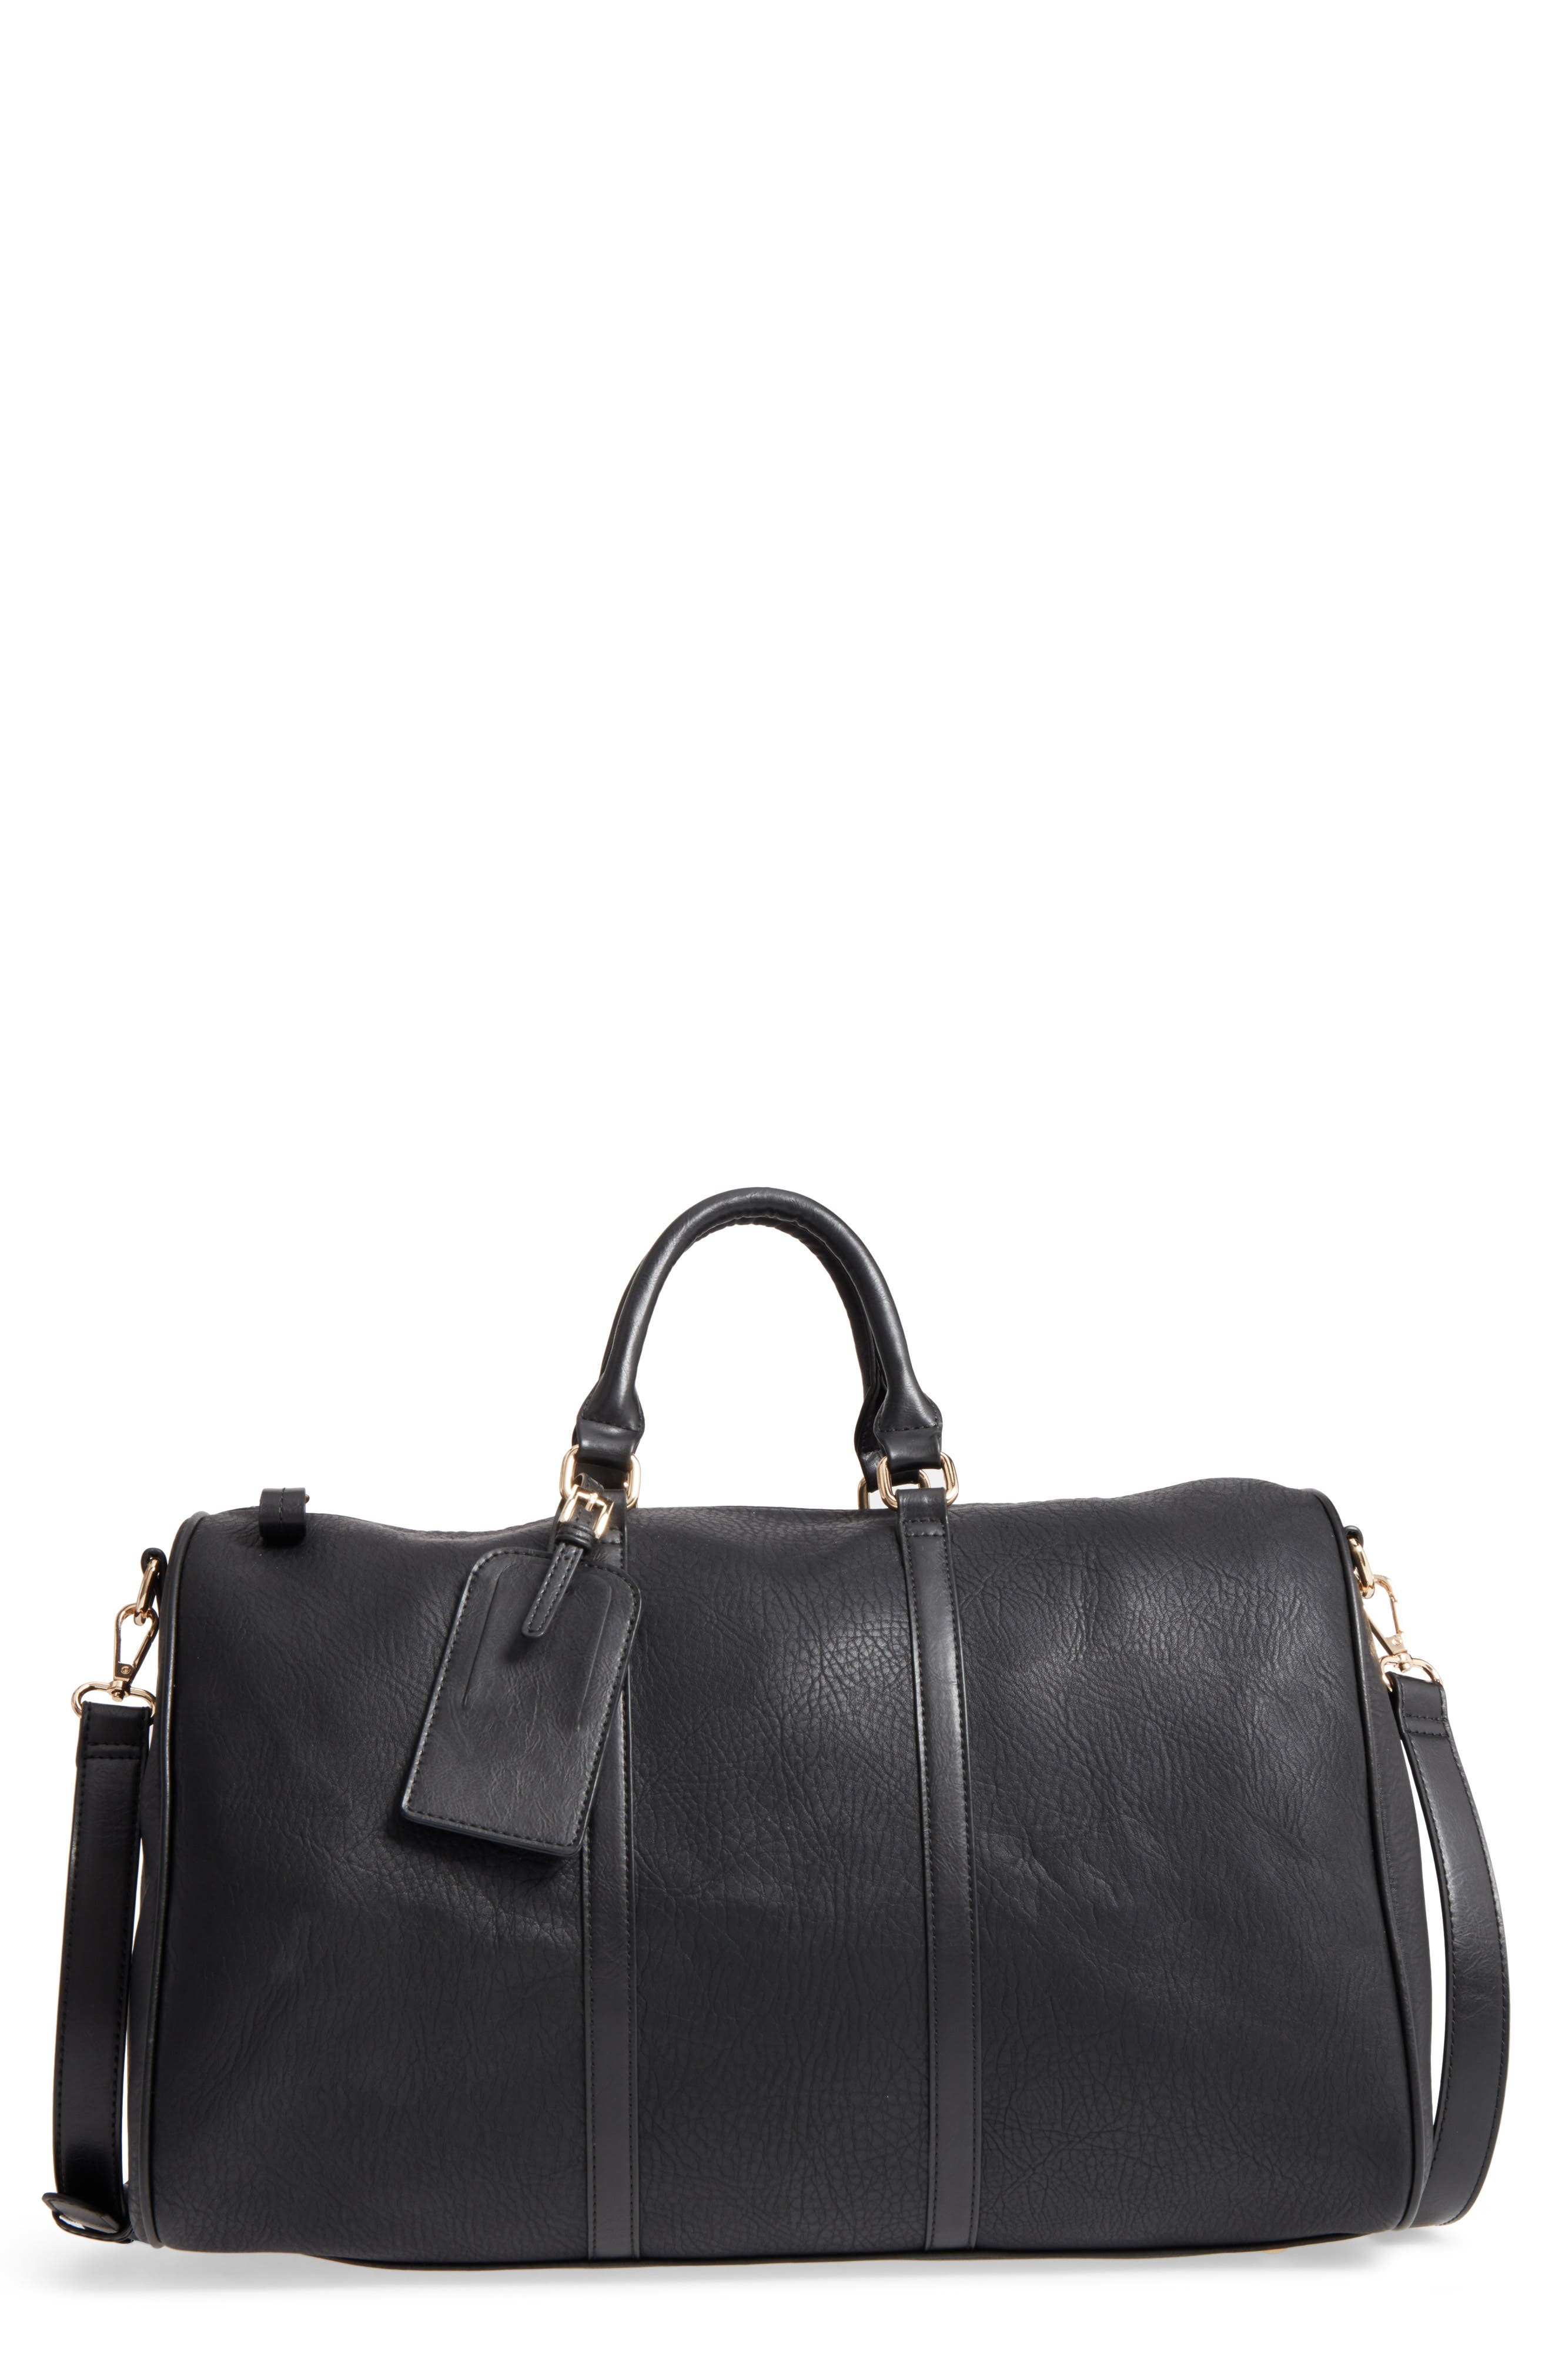 d09e37aefc22 Sole Society Cassidy Faux Leather Duffle Bag - Black